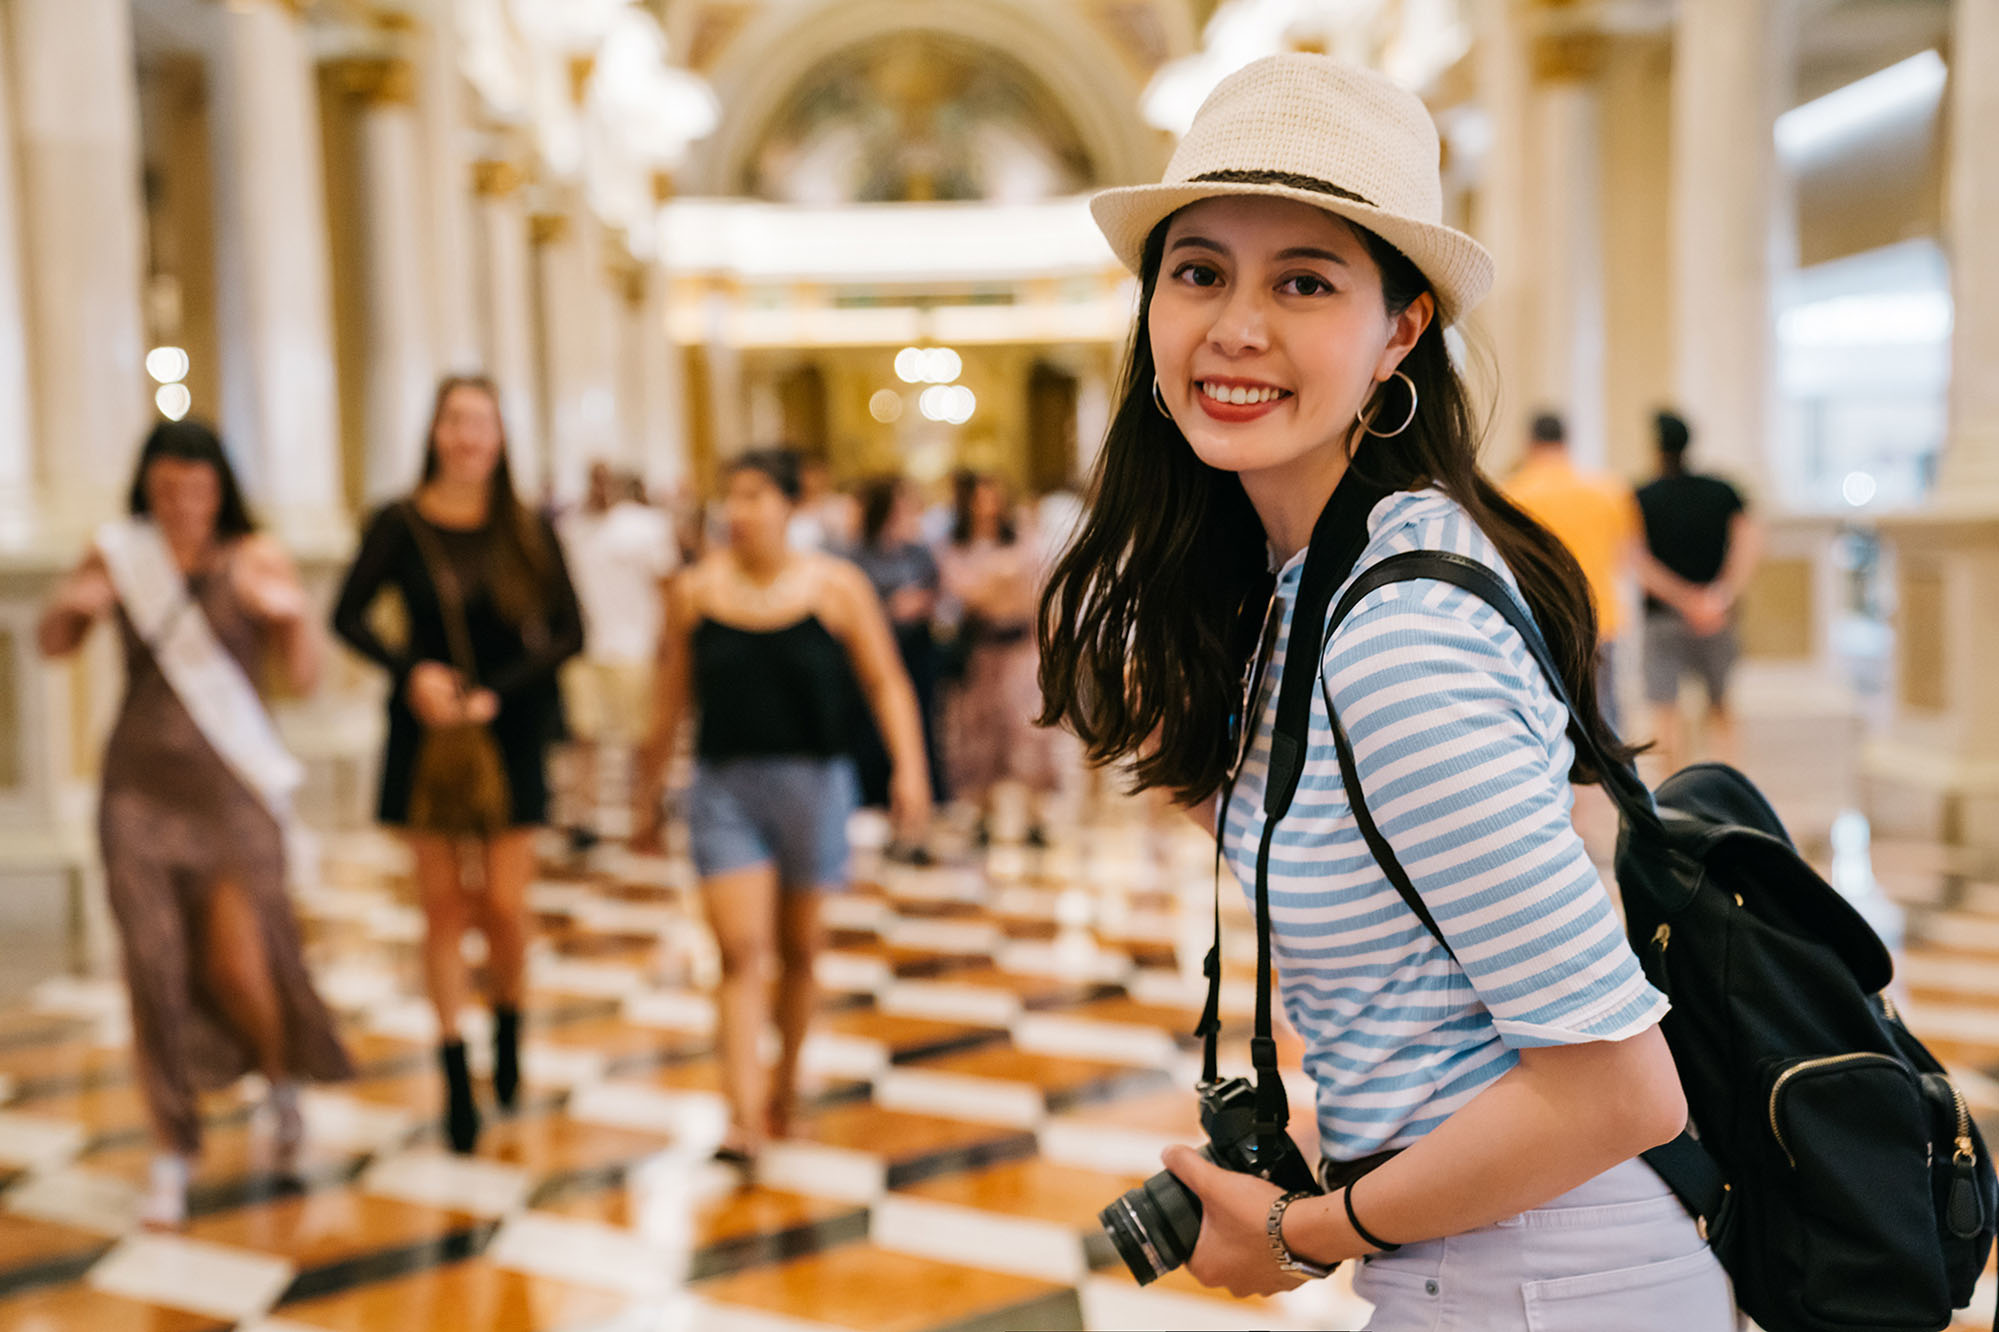 girl in hat at shopping centre street photography portrait city people camera subject light how to tutorial guide